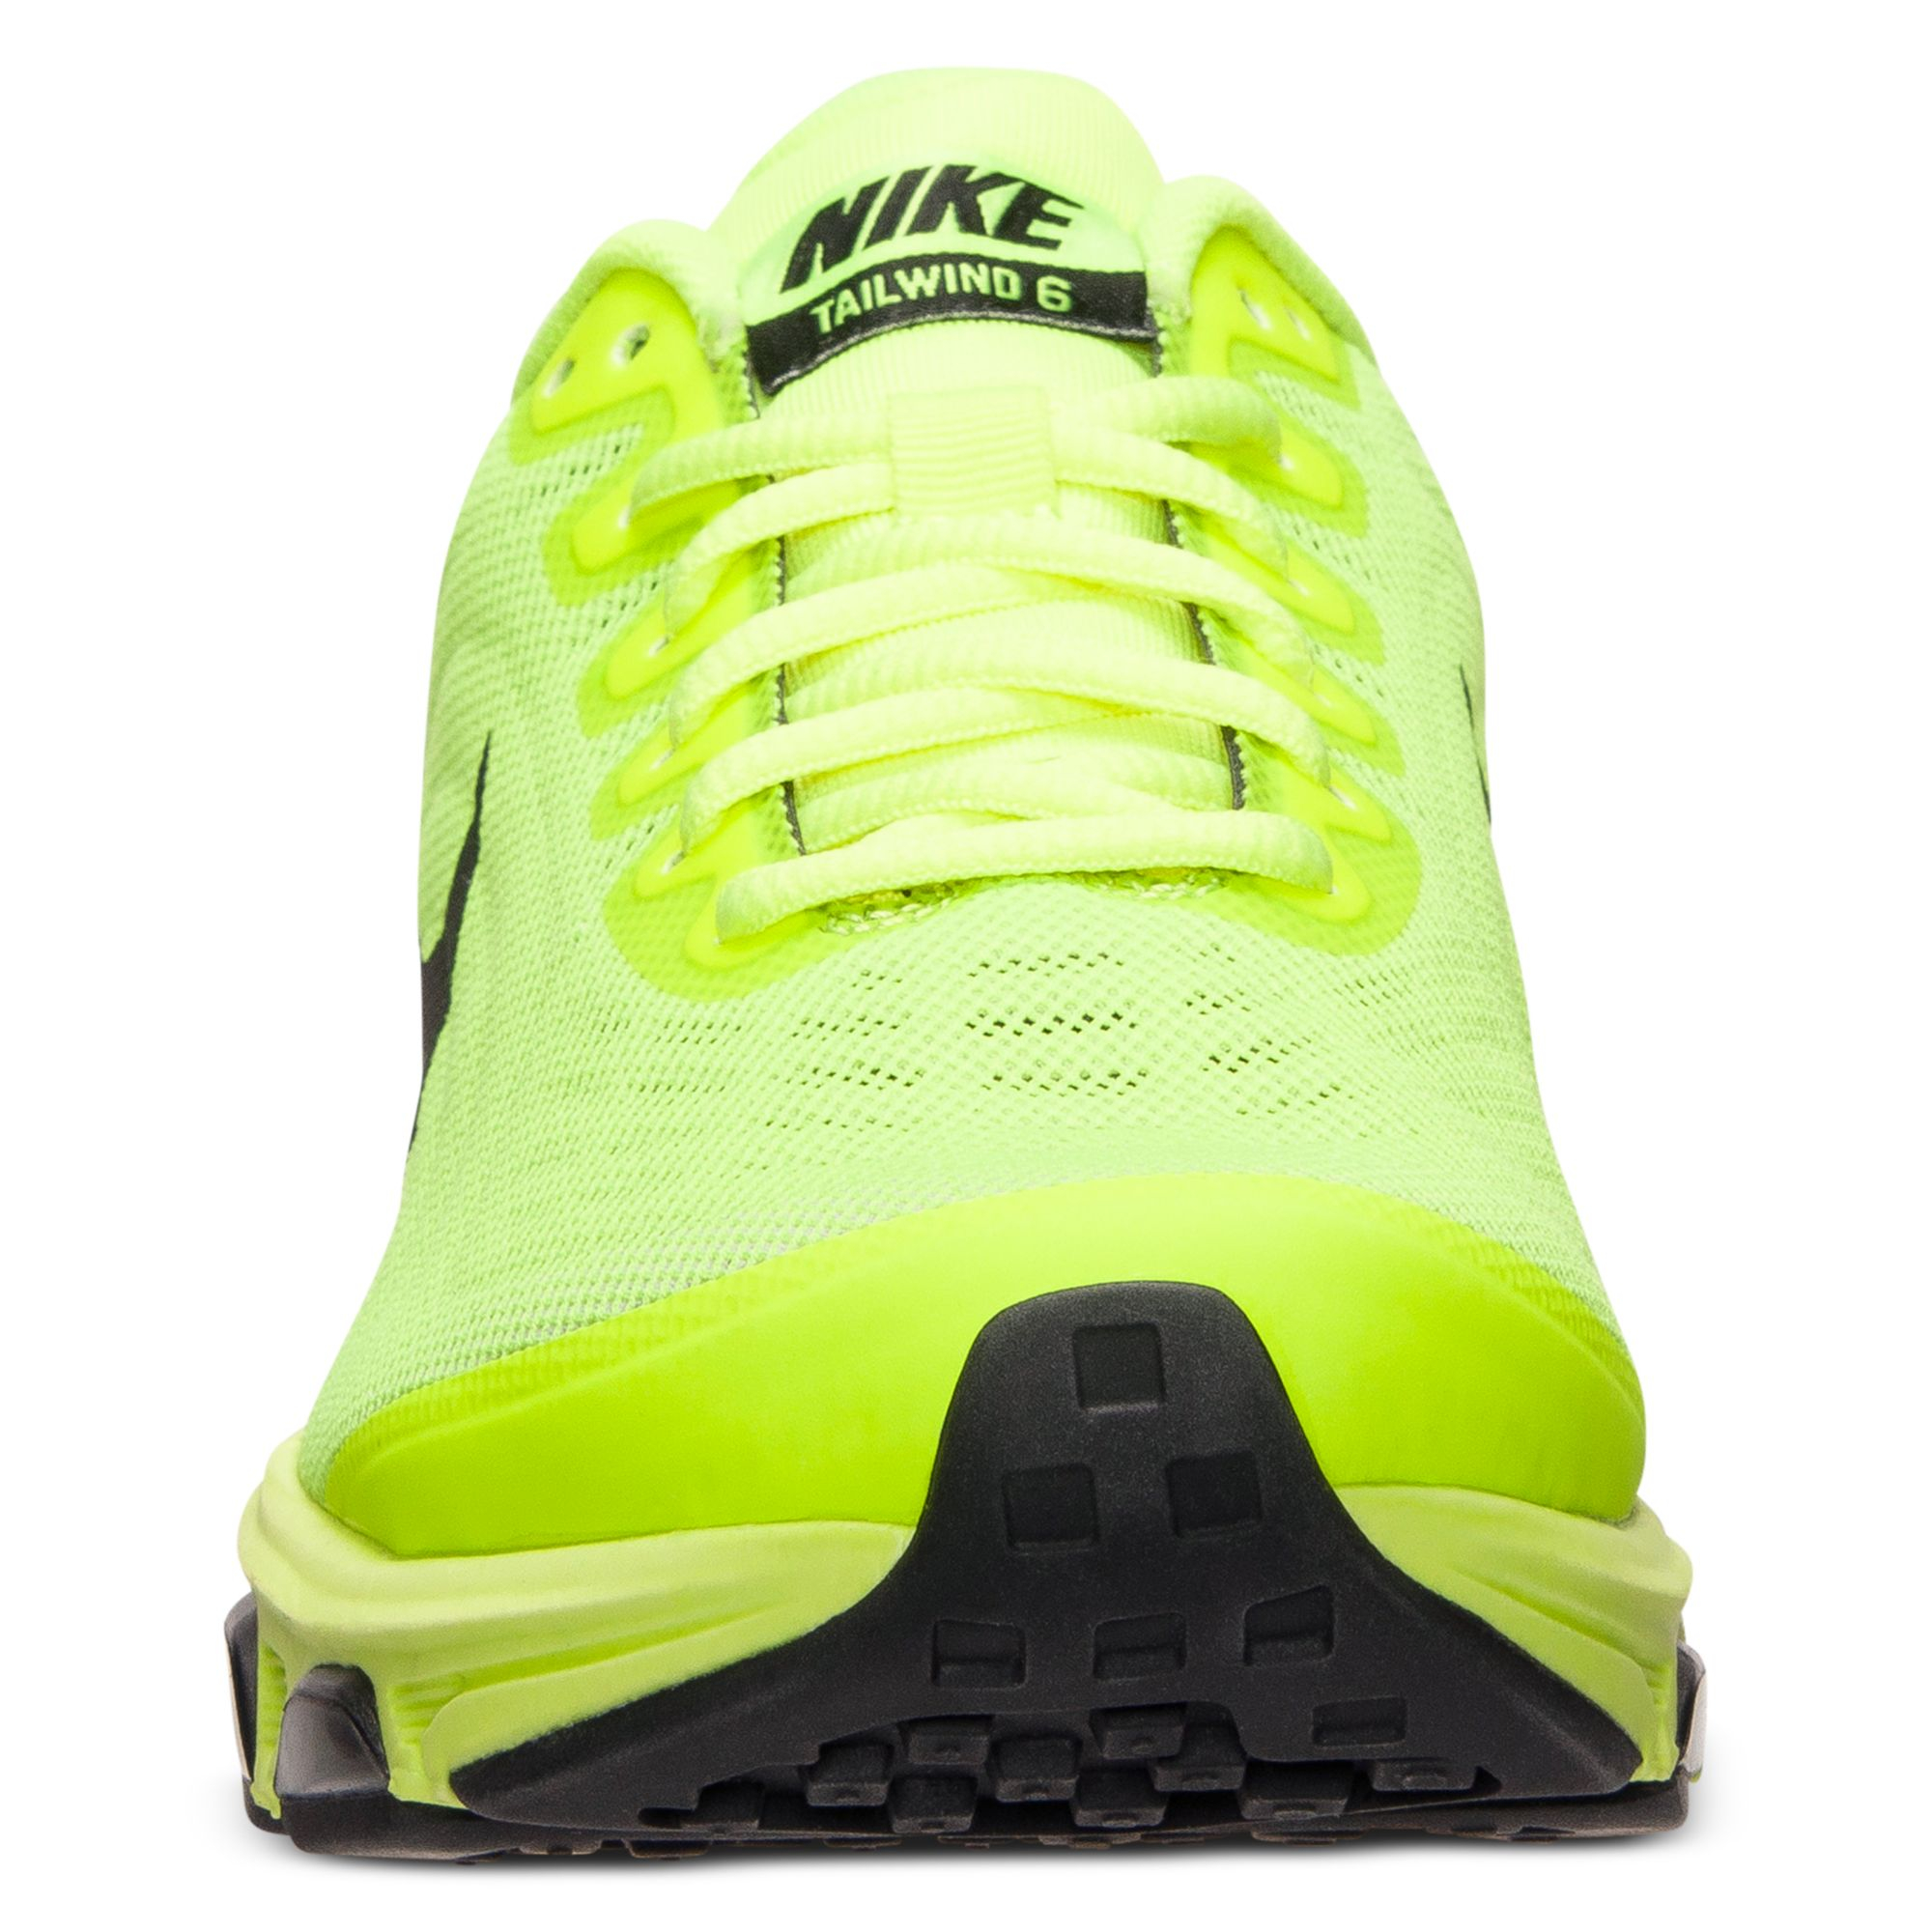 ab483b0457 ... best lyst nike mens air max tailwind 6 running sneakers from finish  65f2b 2d391